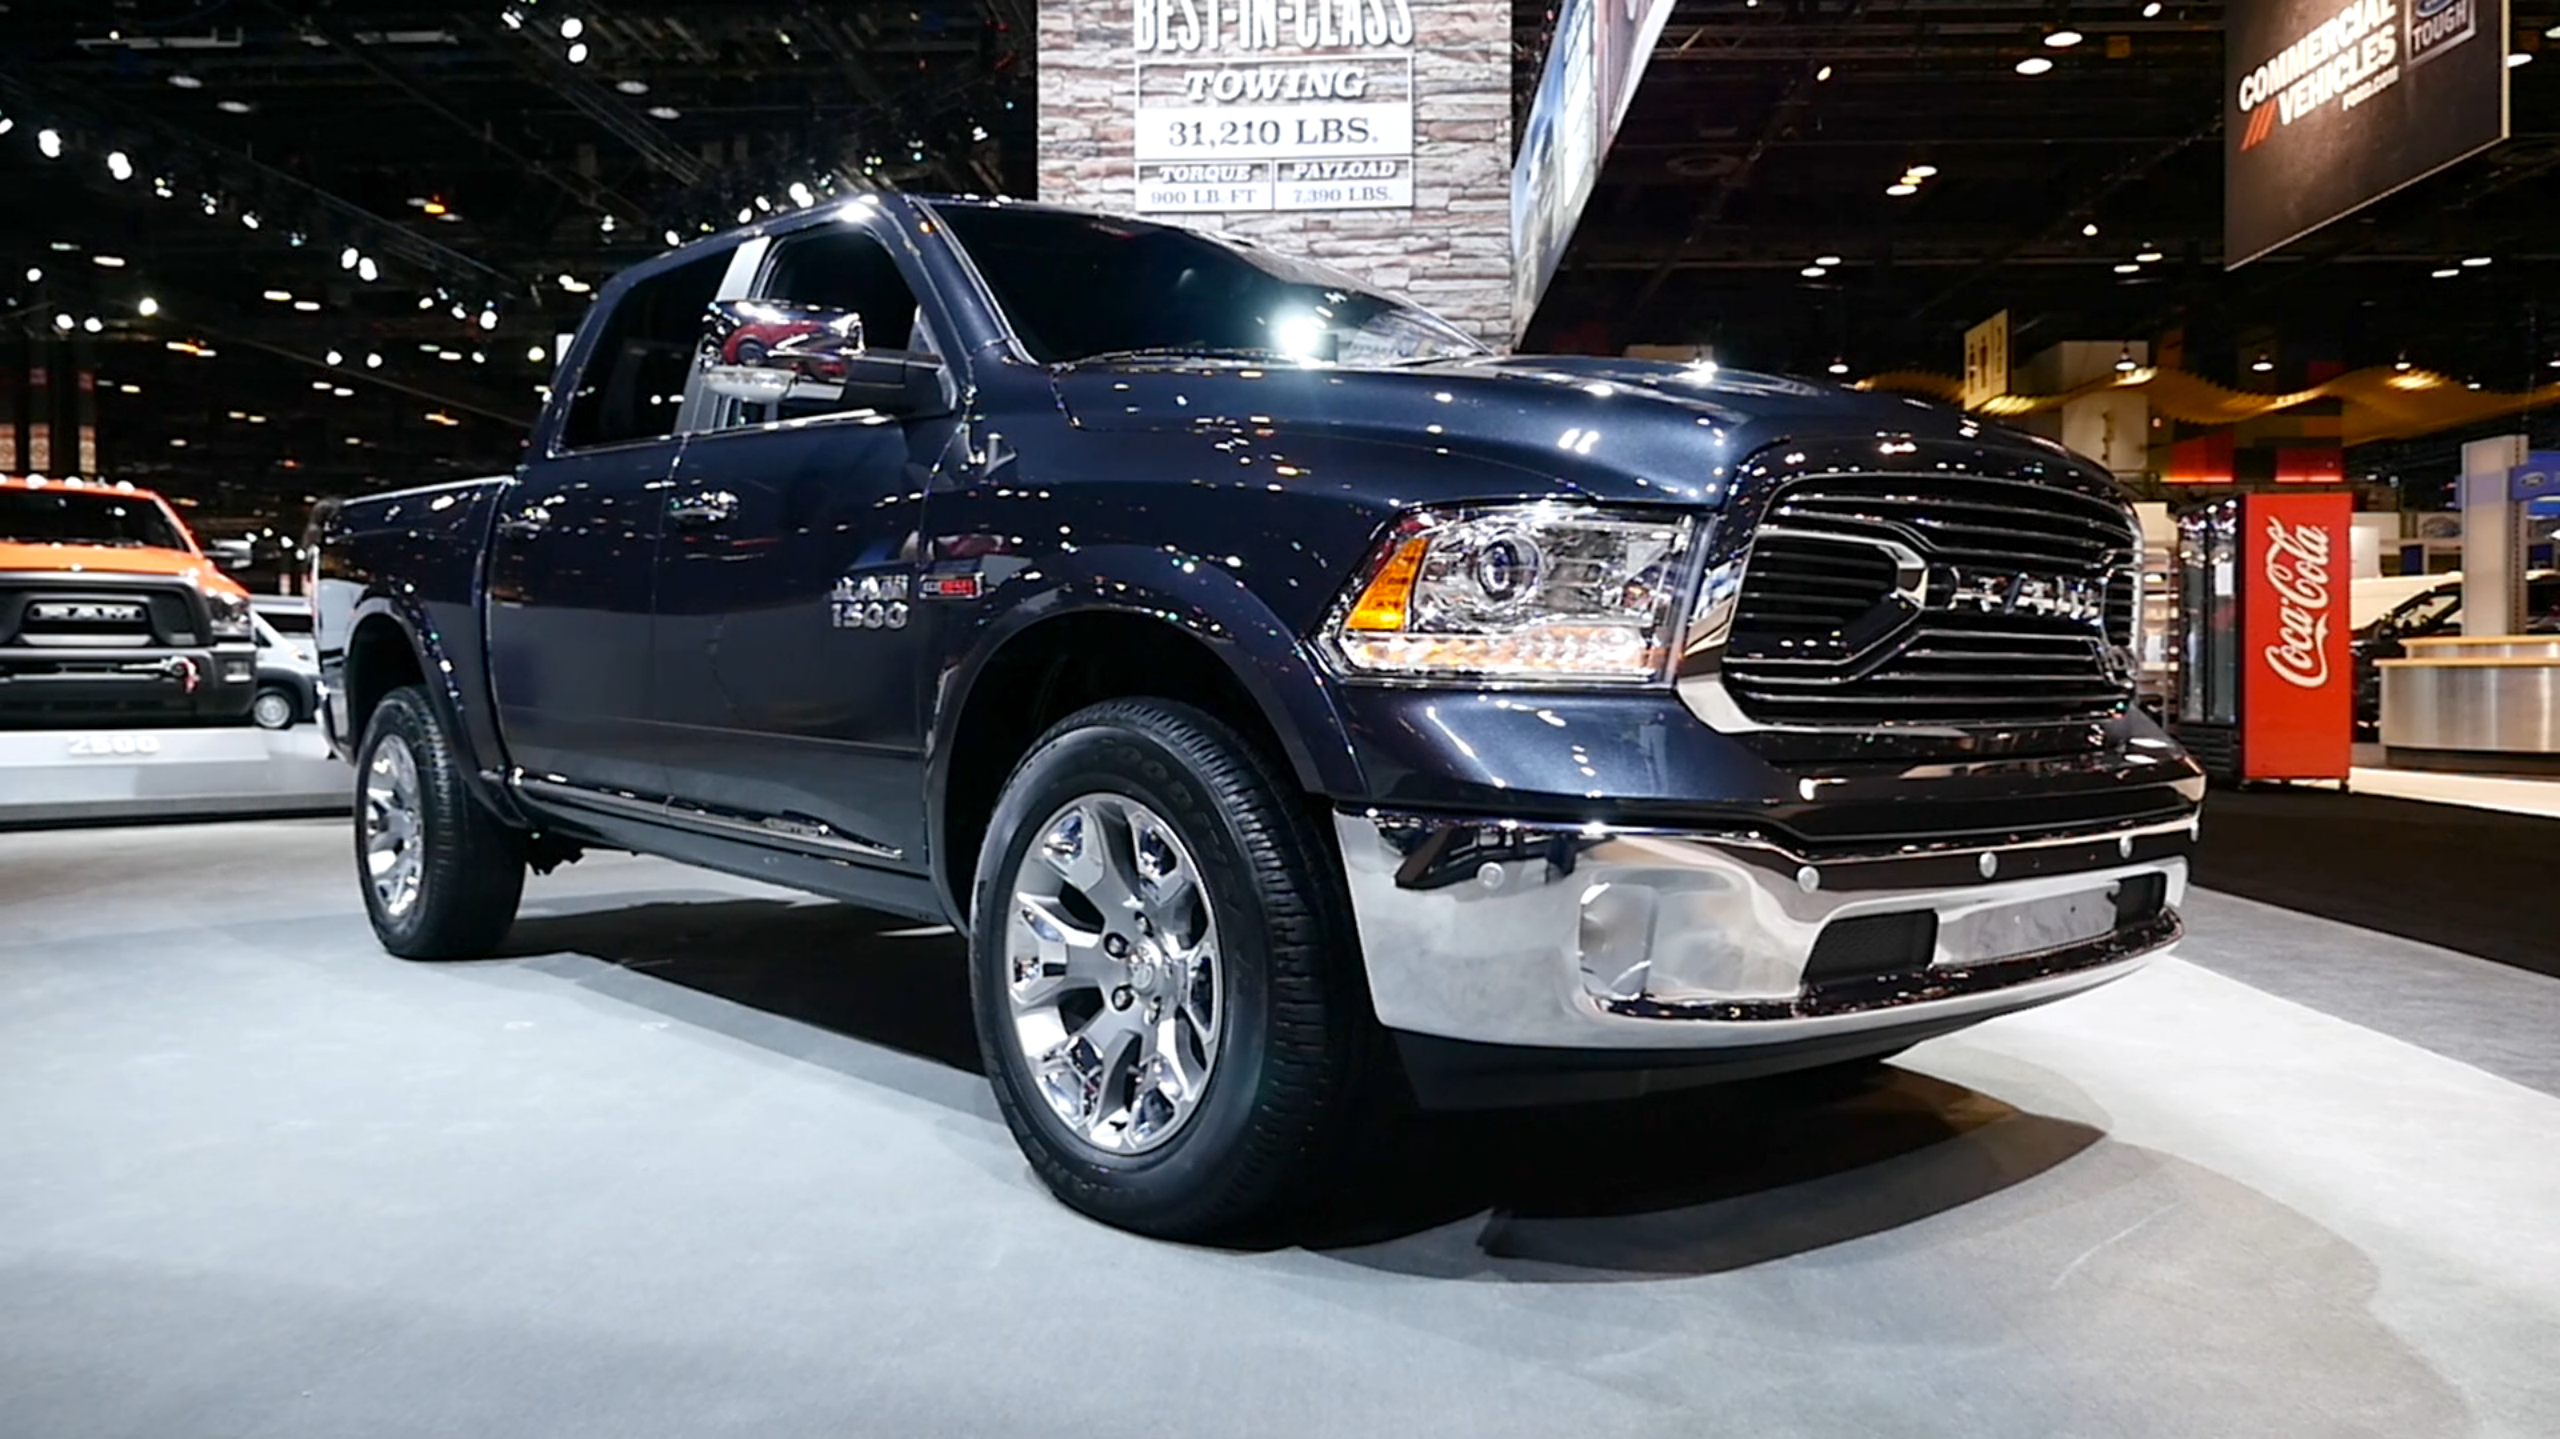 68 A 2019 Dodge 1500 Diesel Price And Review